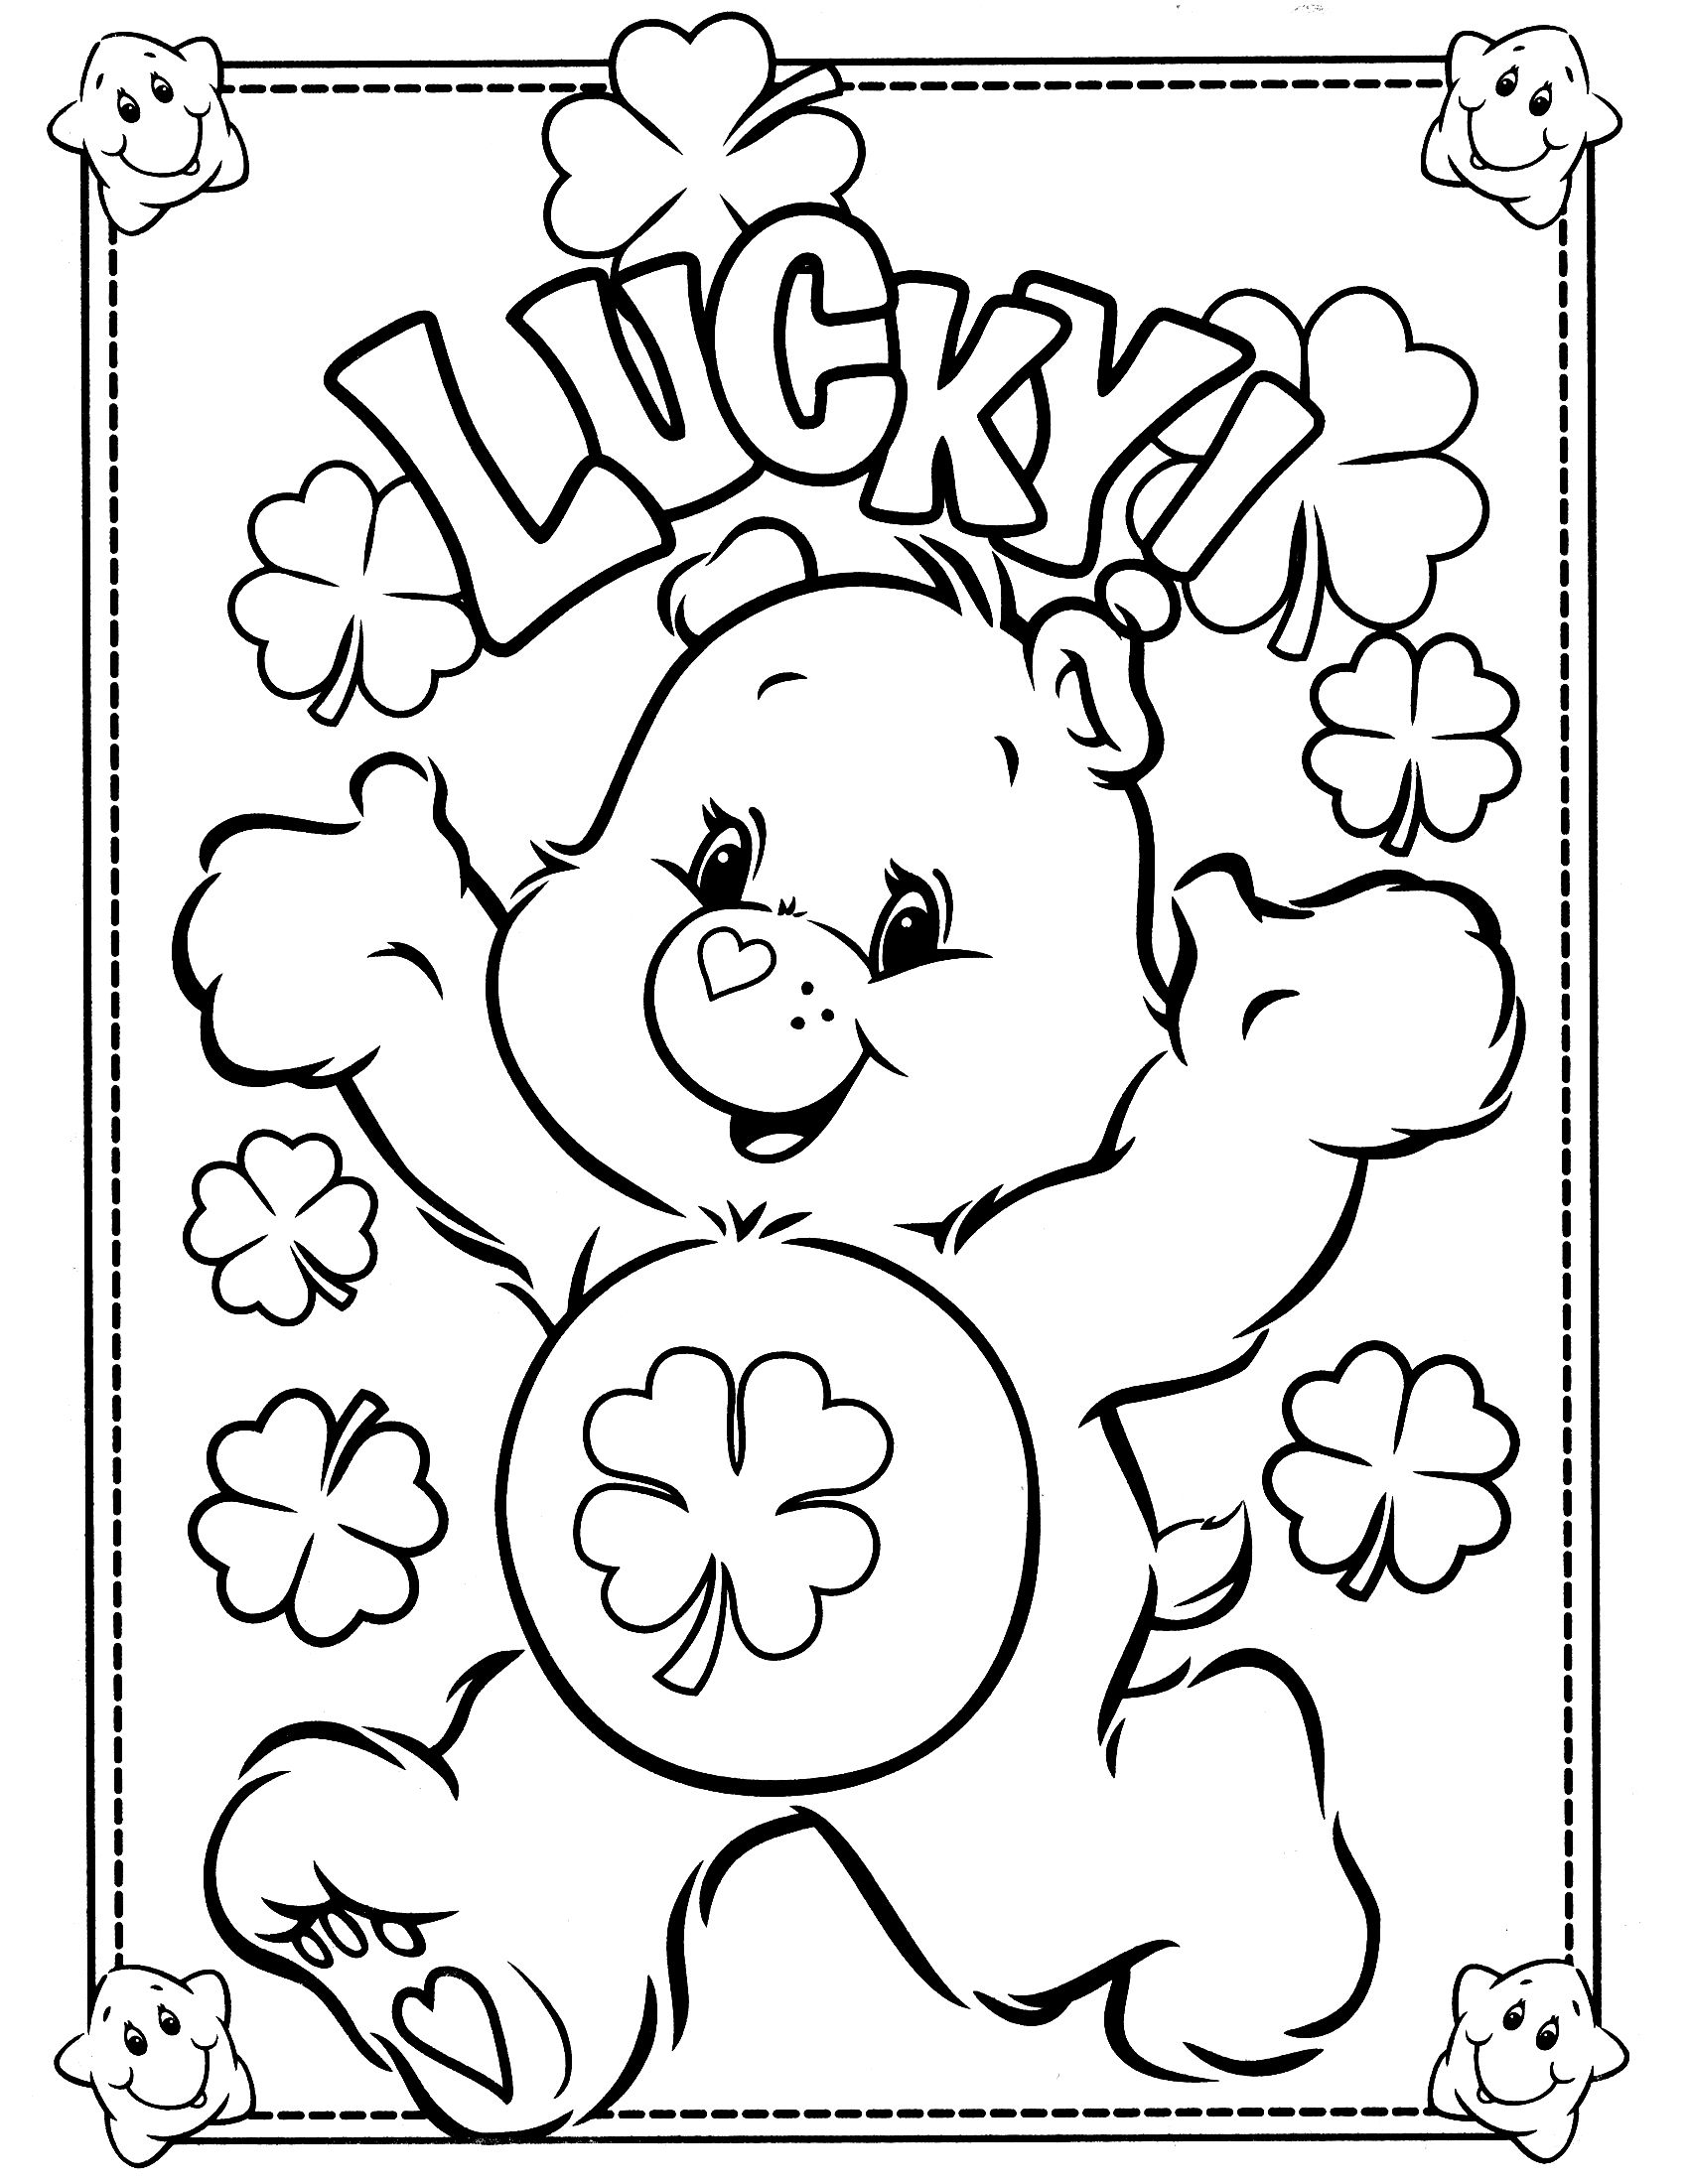 care bears coloring pages Care Bears Coloring Page 6